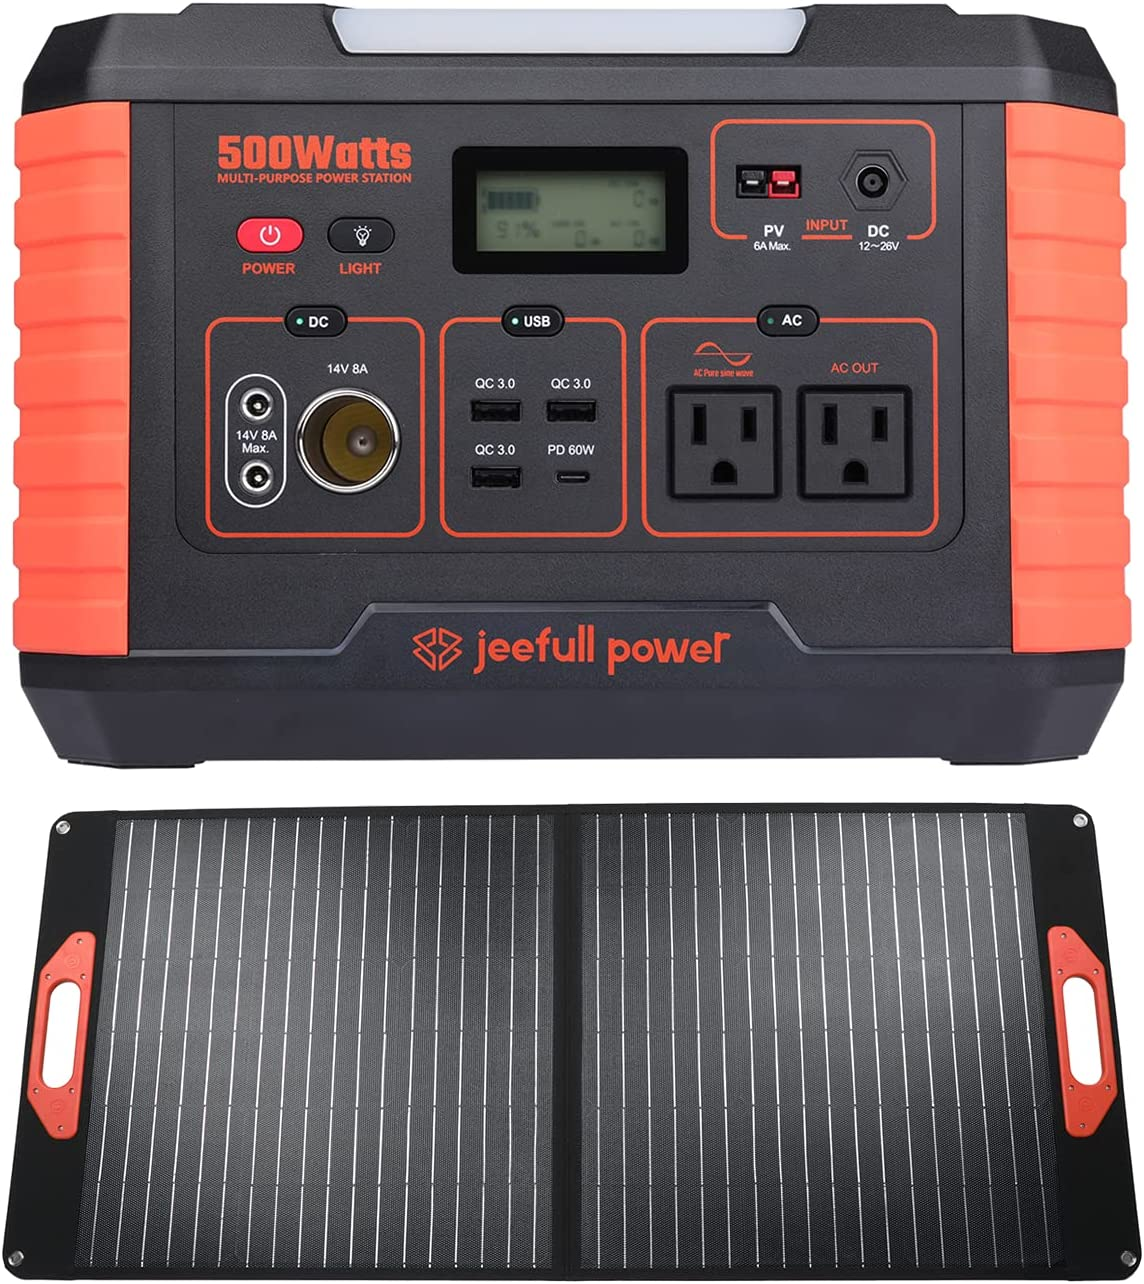 Jeefull Rapid rise Power Portable Station with 500W 519W Tucson Mall Solar Panel